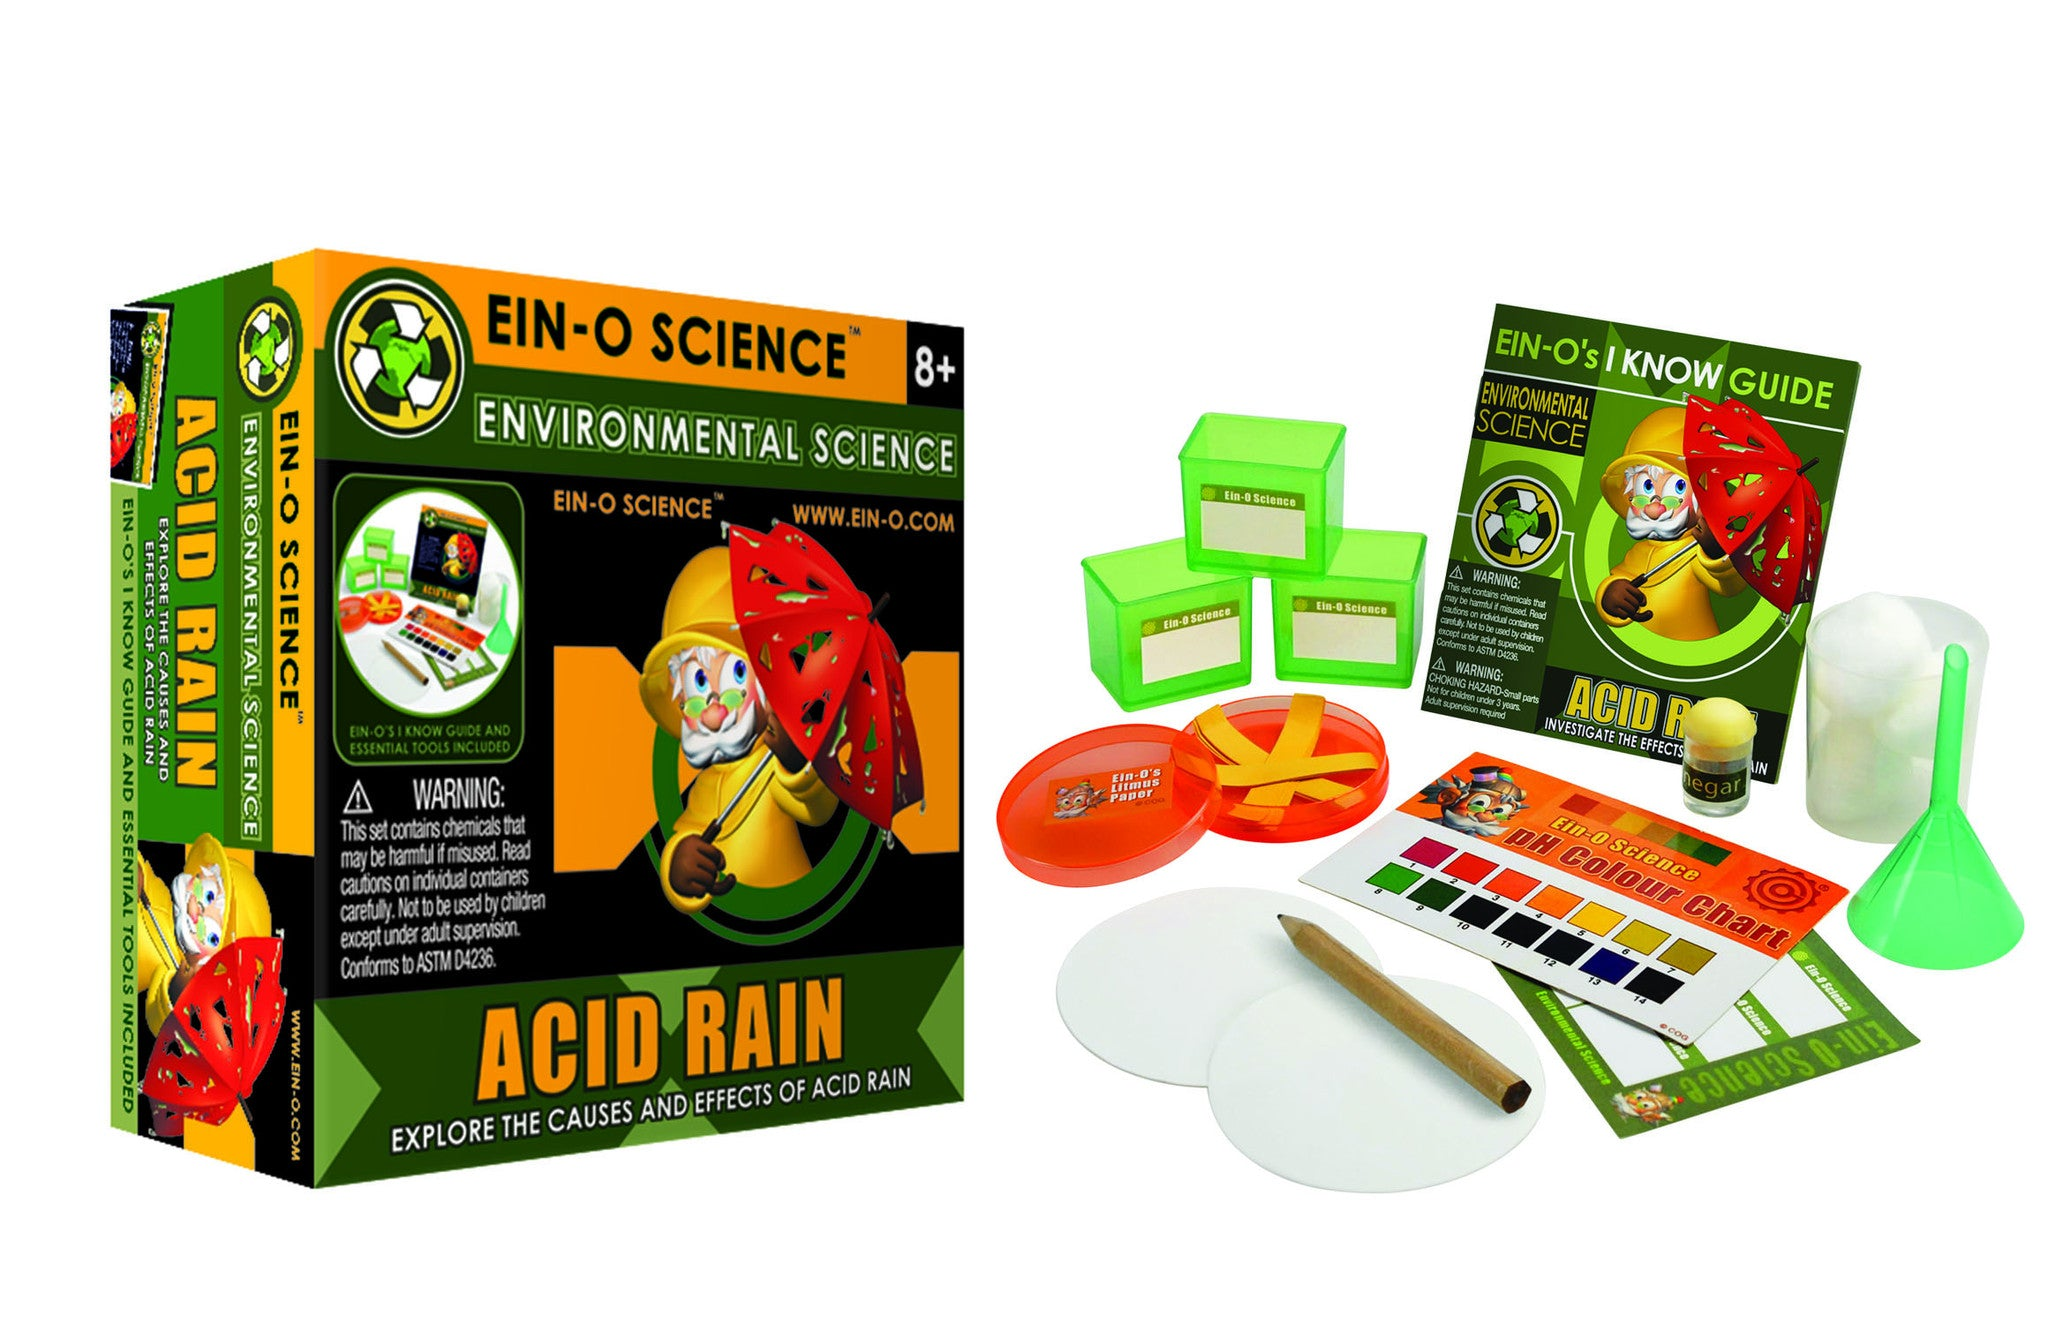 Acid Rain Kit - The Science Shop